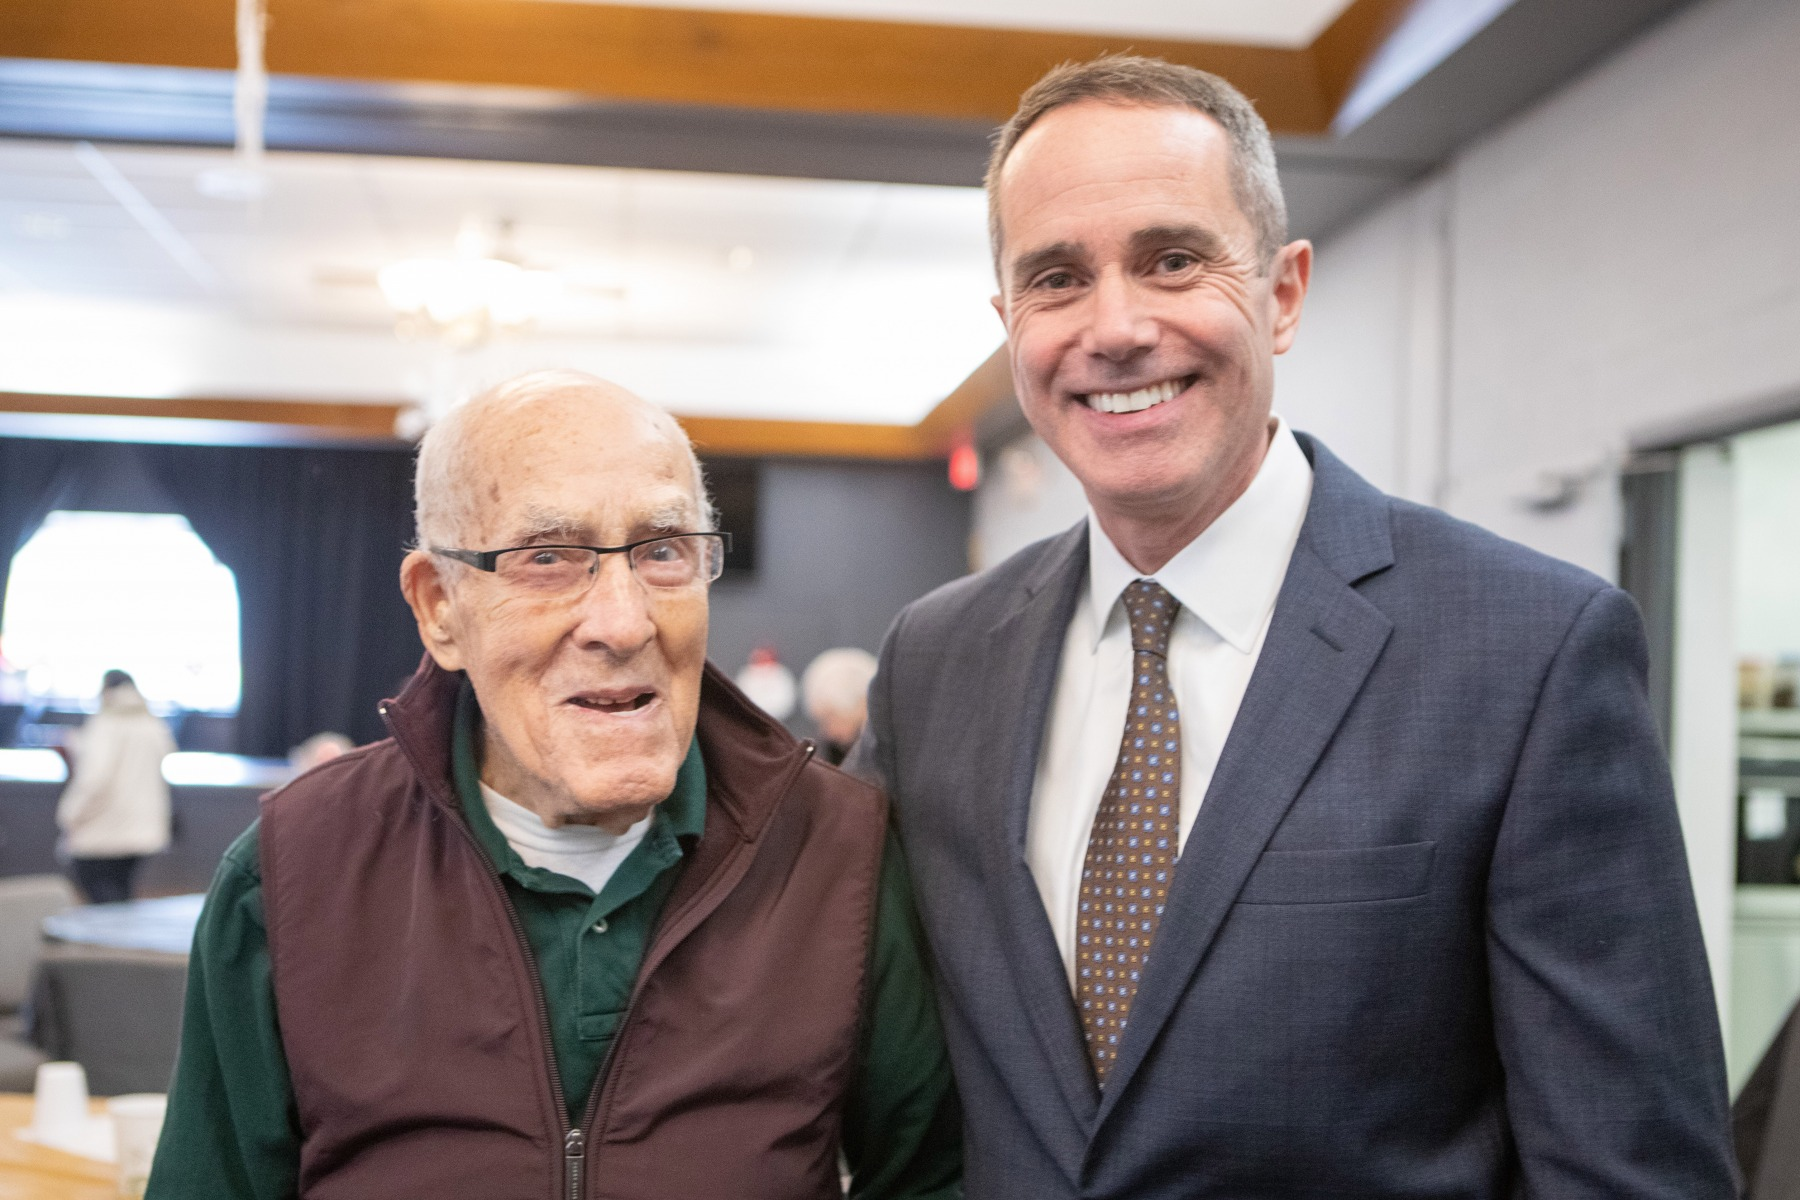 November 15, 2019: More than 100 people crowded the Central Bucks Senior Activity Center in Doylestown today for a Legislative Breakfast hosted by state Sen. Steve Santarsiero.  The audience aired concerns about a wide range of subjects including property taxes and gun violence.